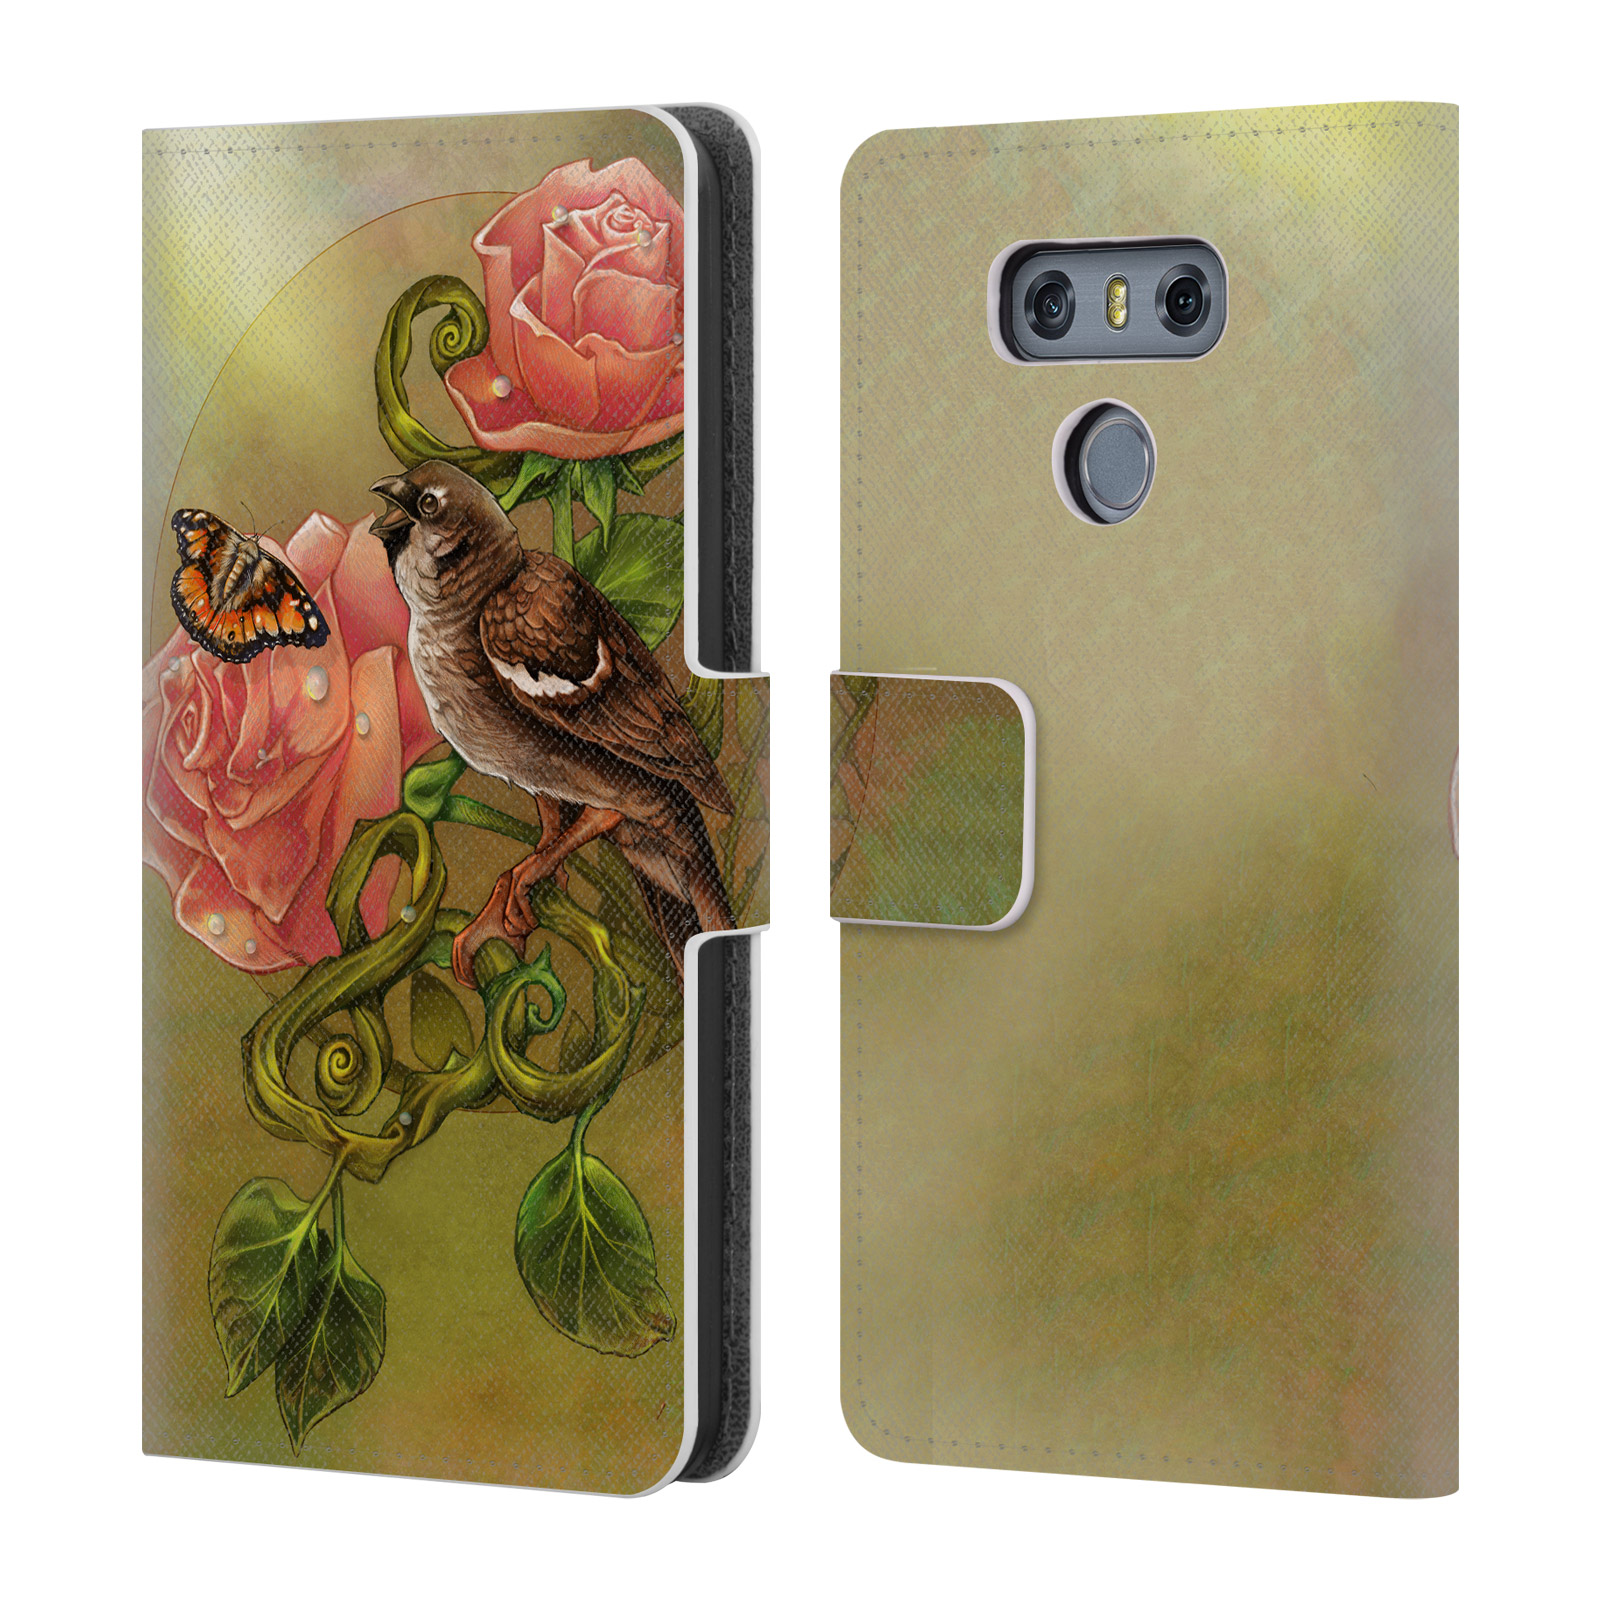 OFFICIAL-RENEE-BIERTEMPFEL-ANIMALS-LEATHER-BOOK-WALLET-CASE-FOR-LG-PHONES-1